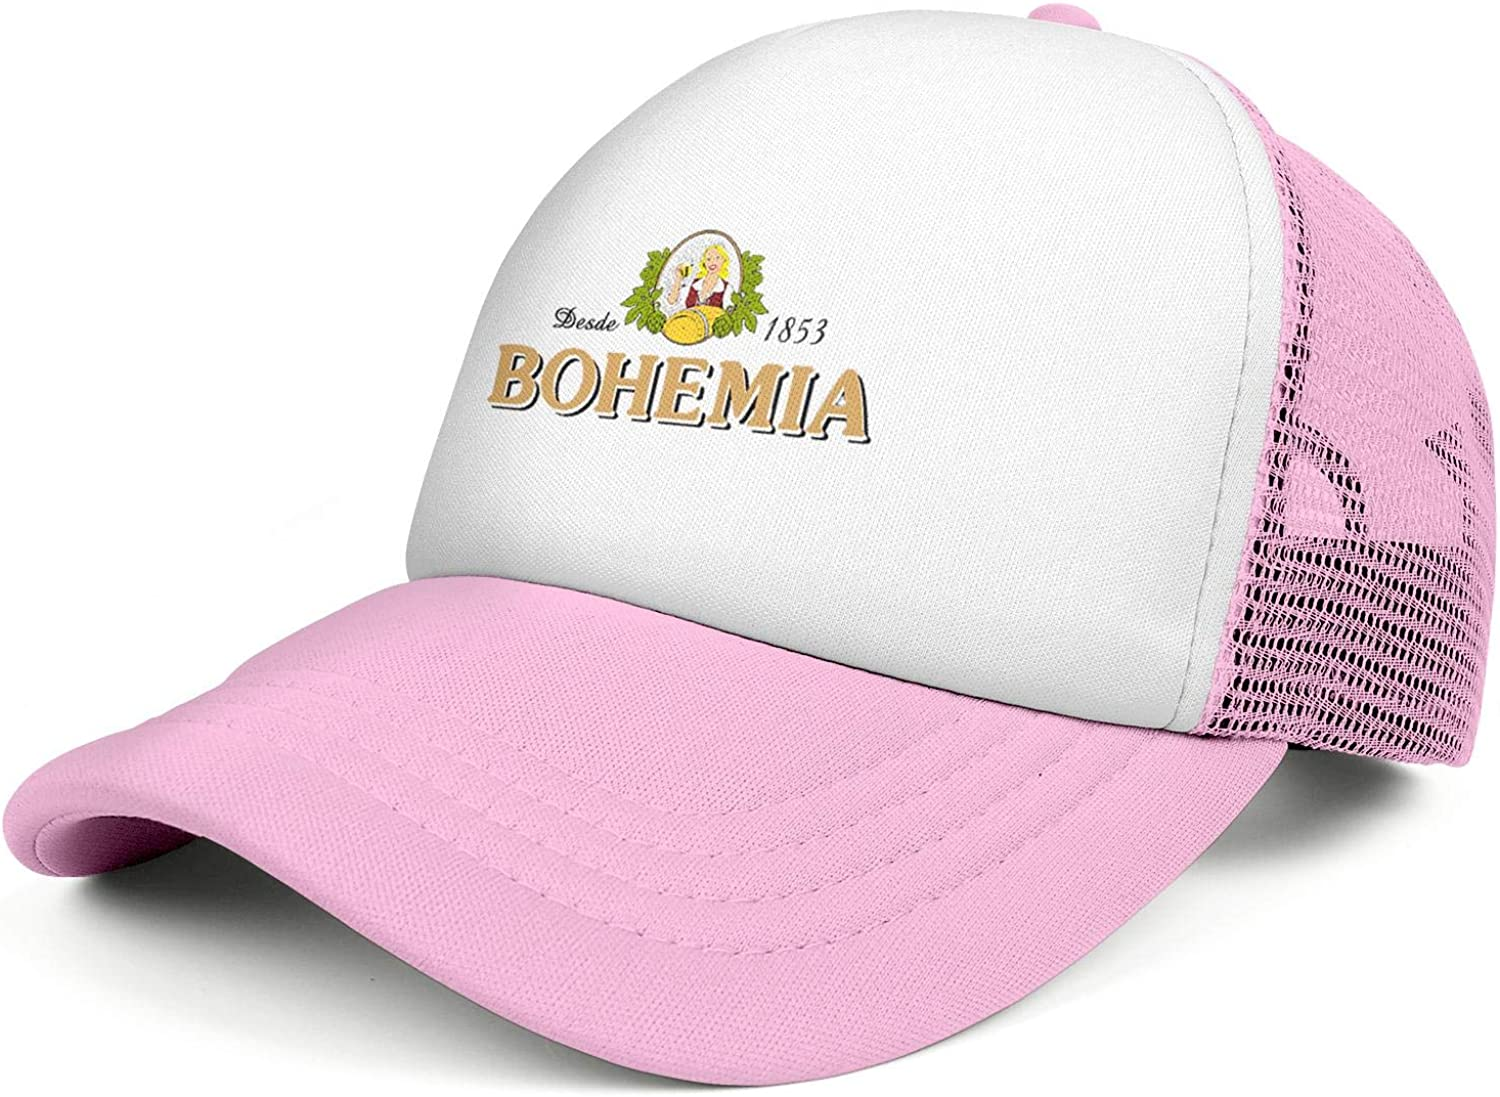 QWQD Bohemia1 Men Women Mesh Cool Cap Adjustable Snapback Sports Hat